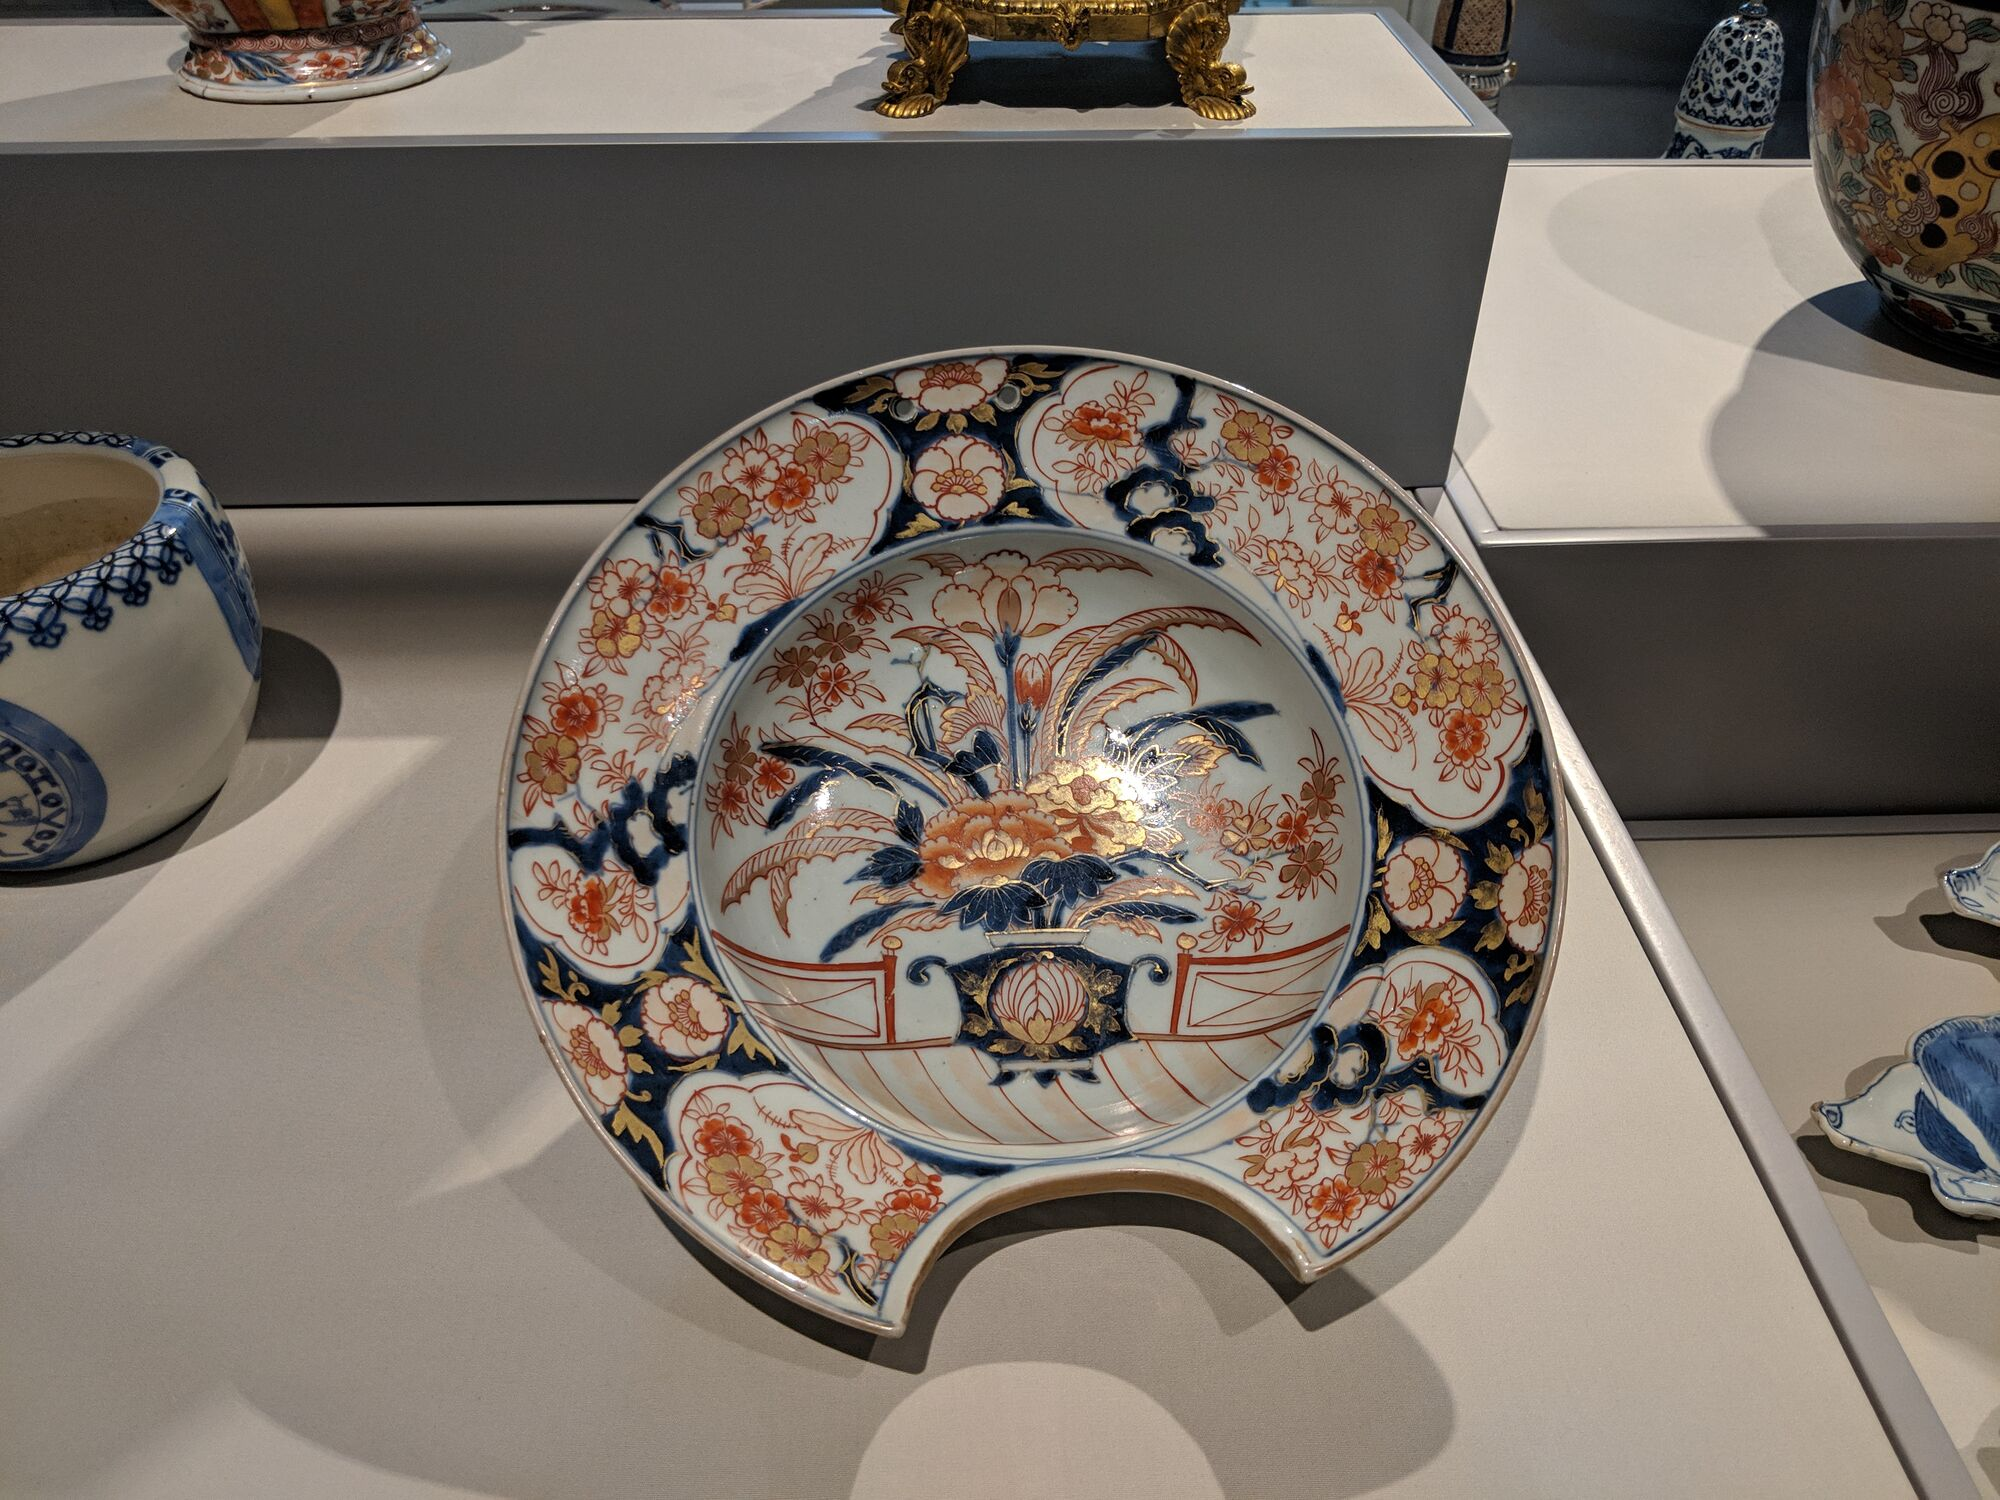 Shaving Basin, Japan, Arita Kilns, early 1700s, Porcelain. Fits under the catch water and lather when shaving.